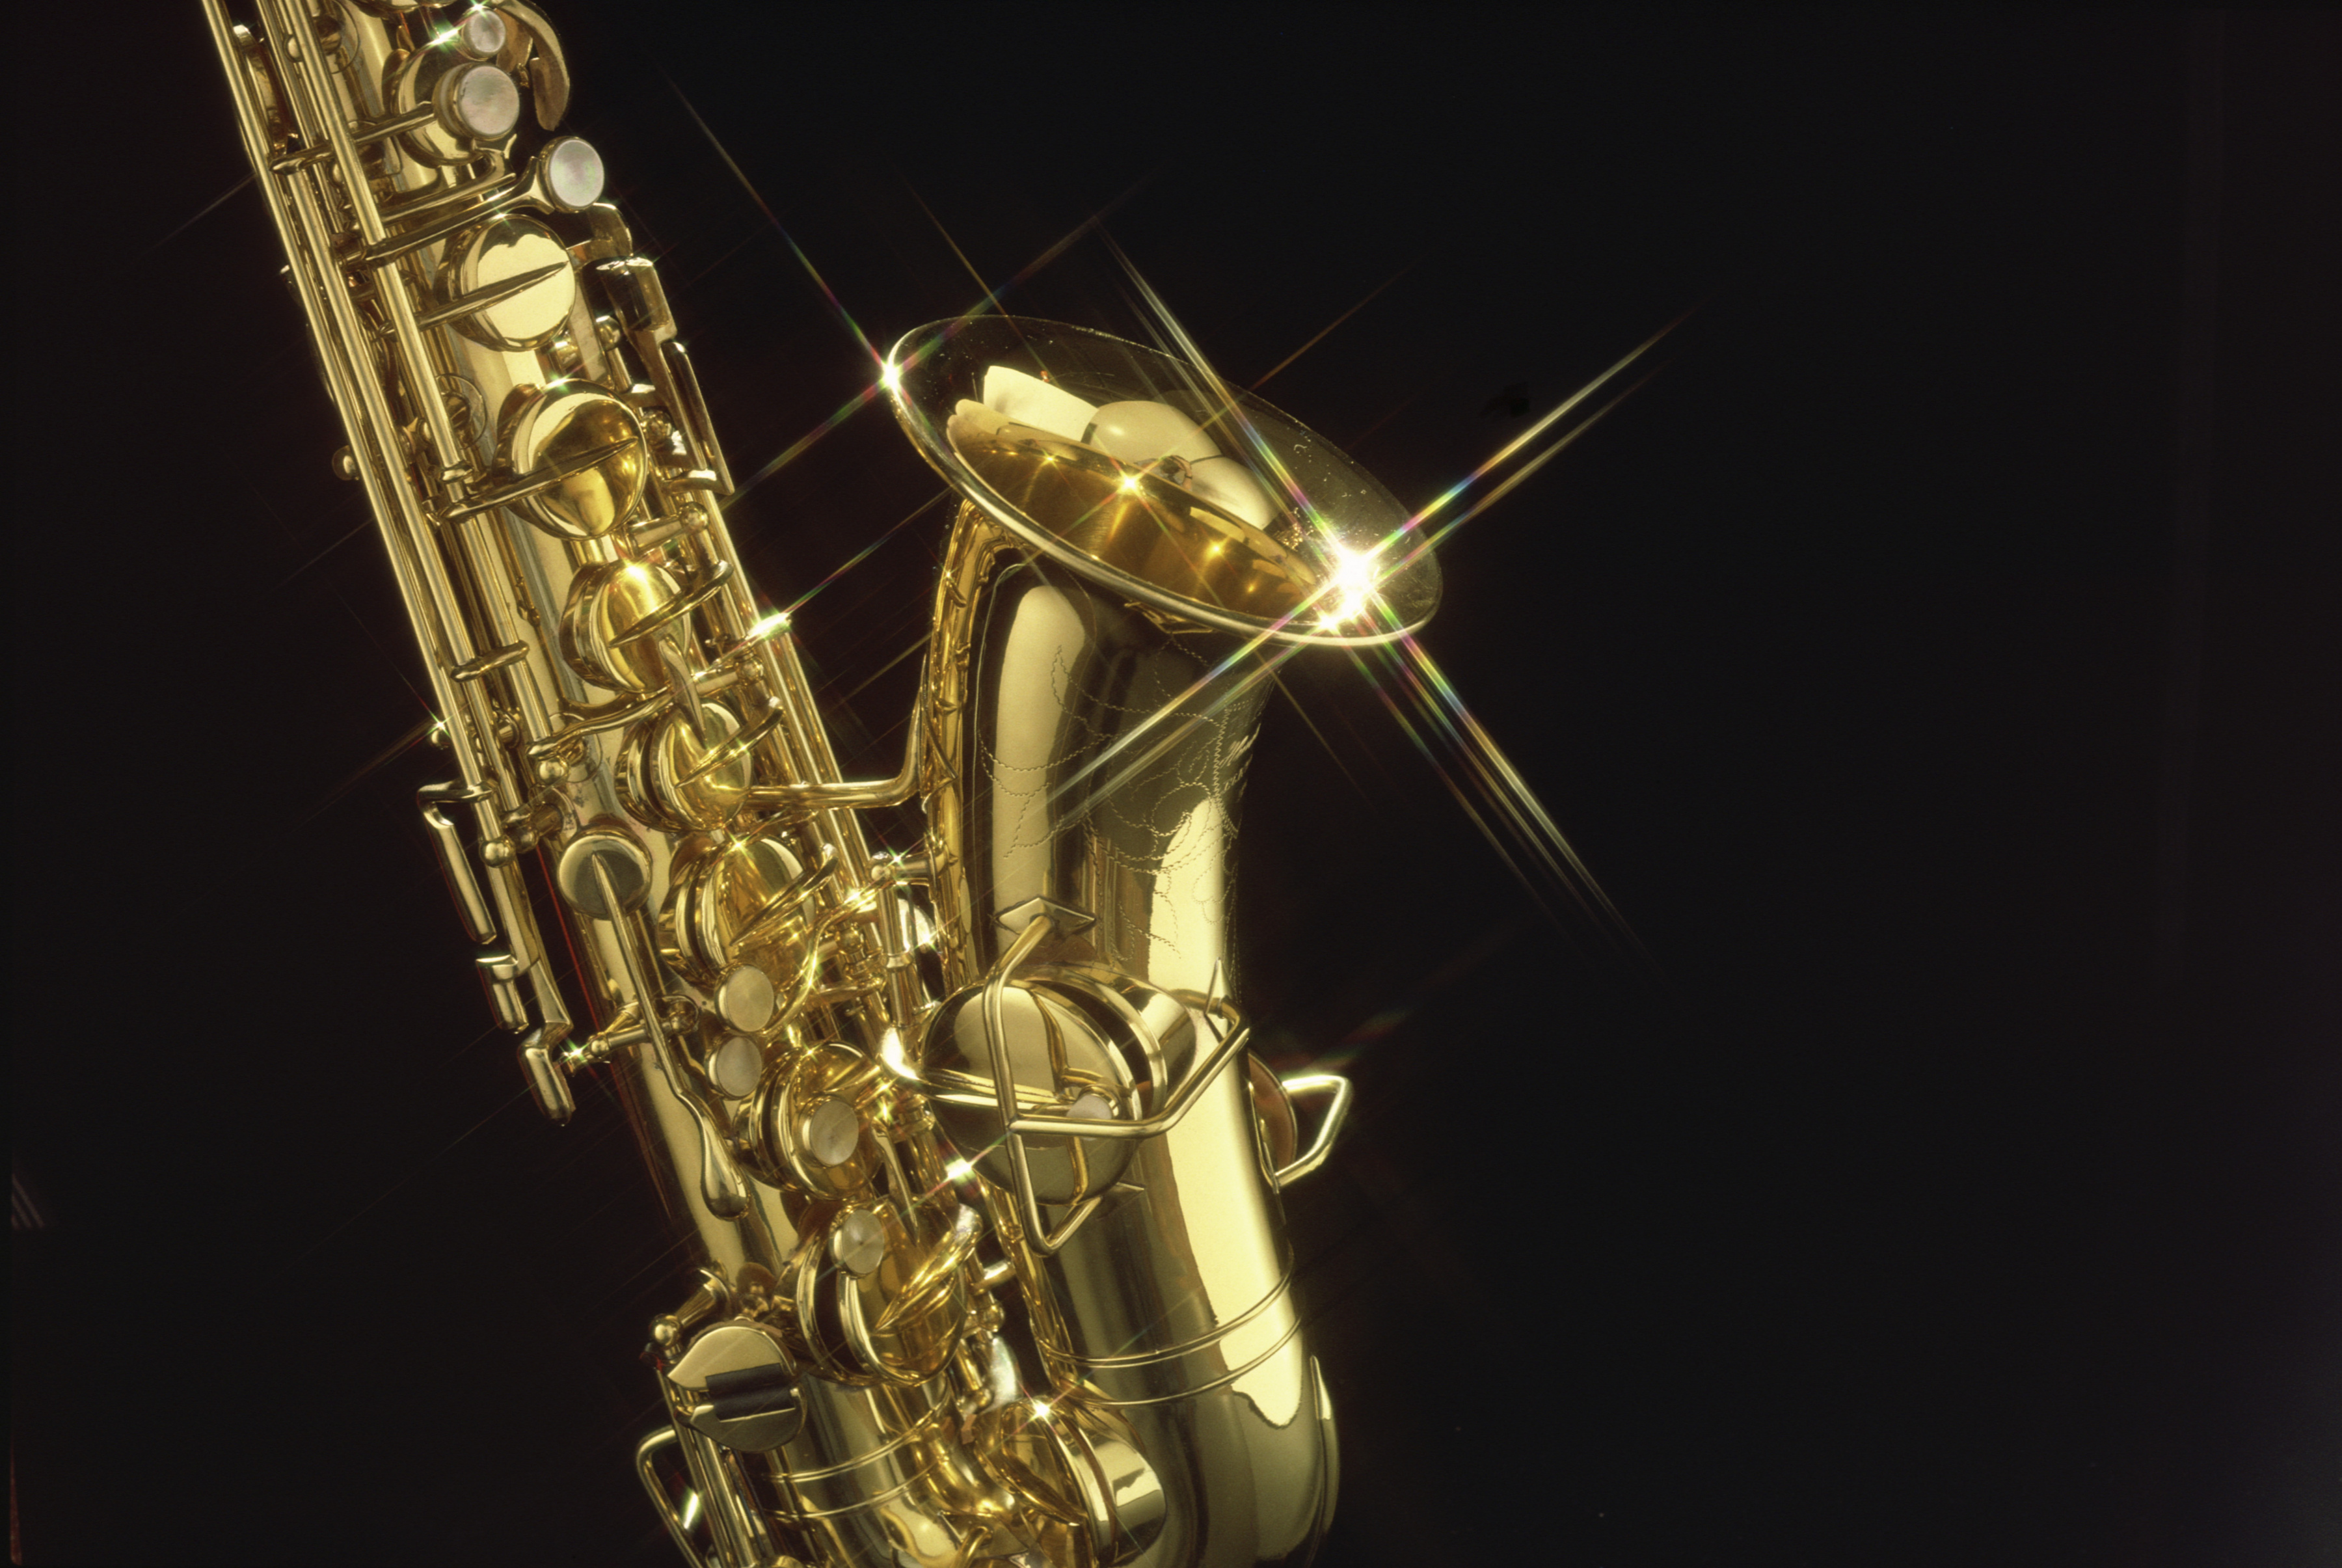 How to Find the Serial Number on a Saxophone | Our Pastimes